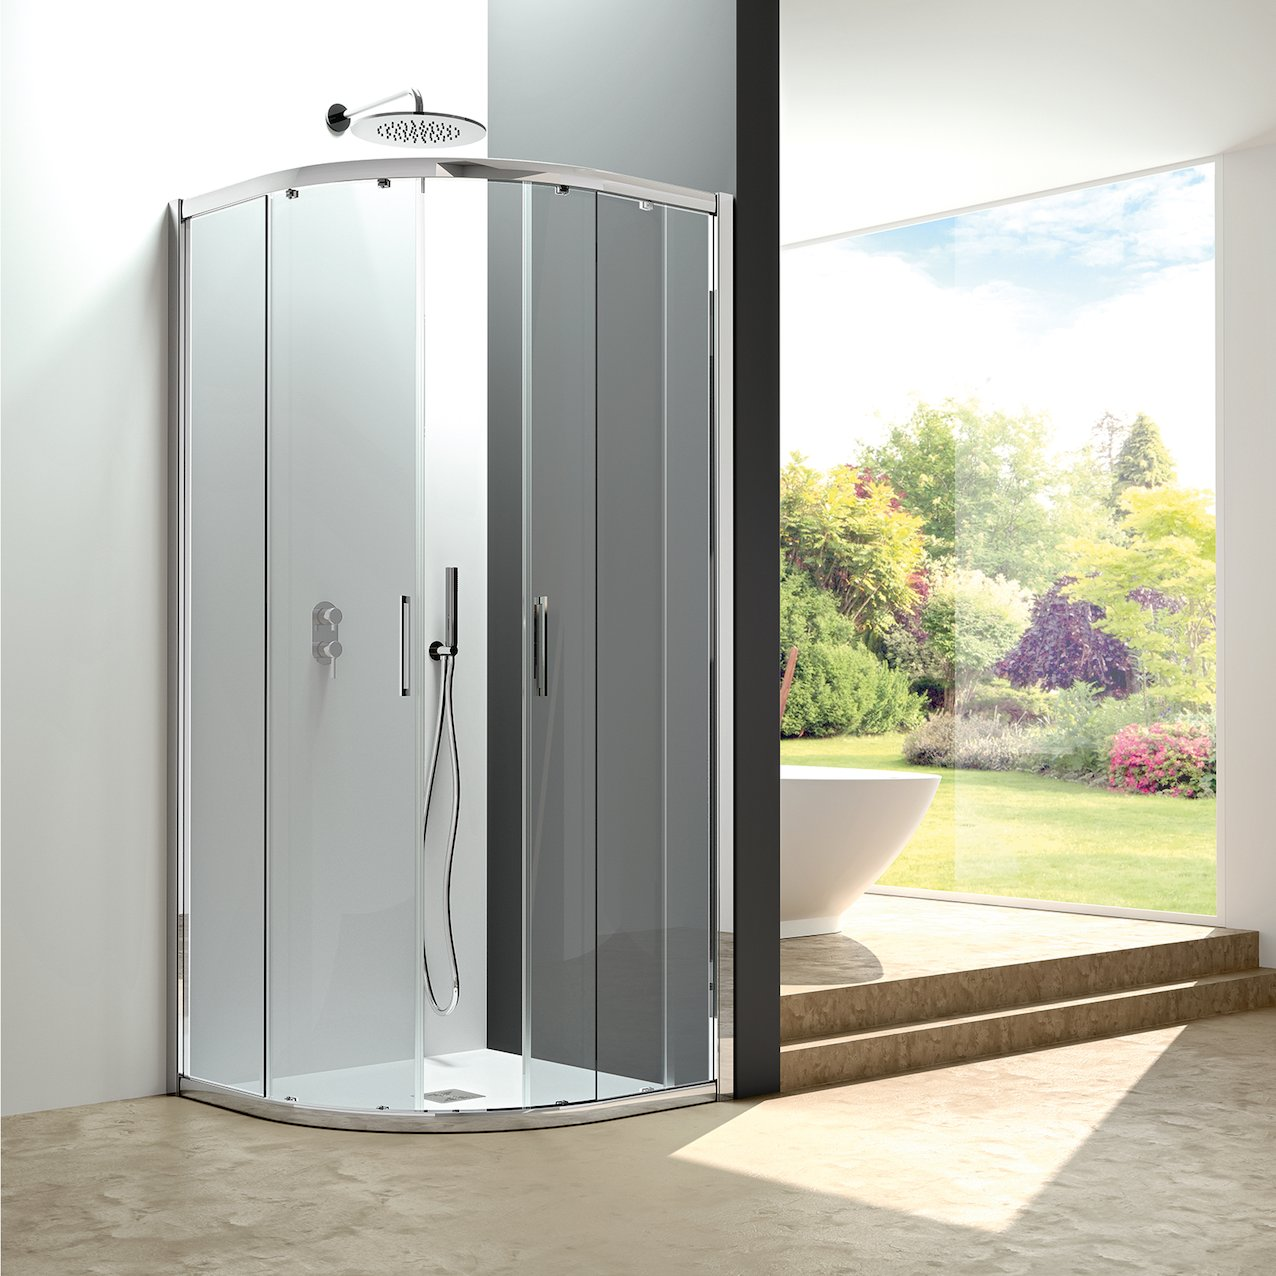 Sliding Shower Enclosure Wallaman